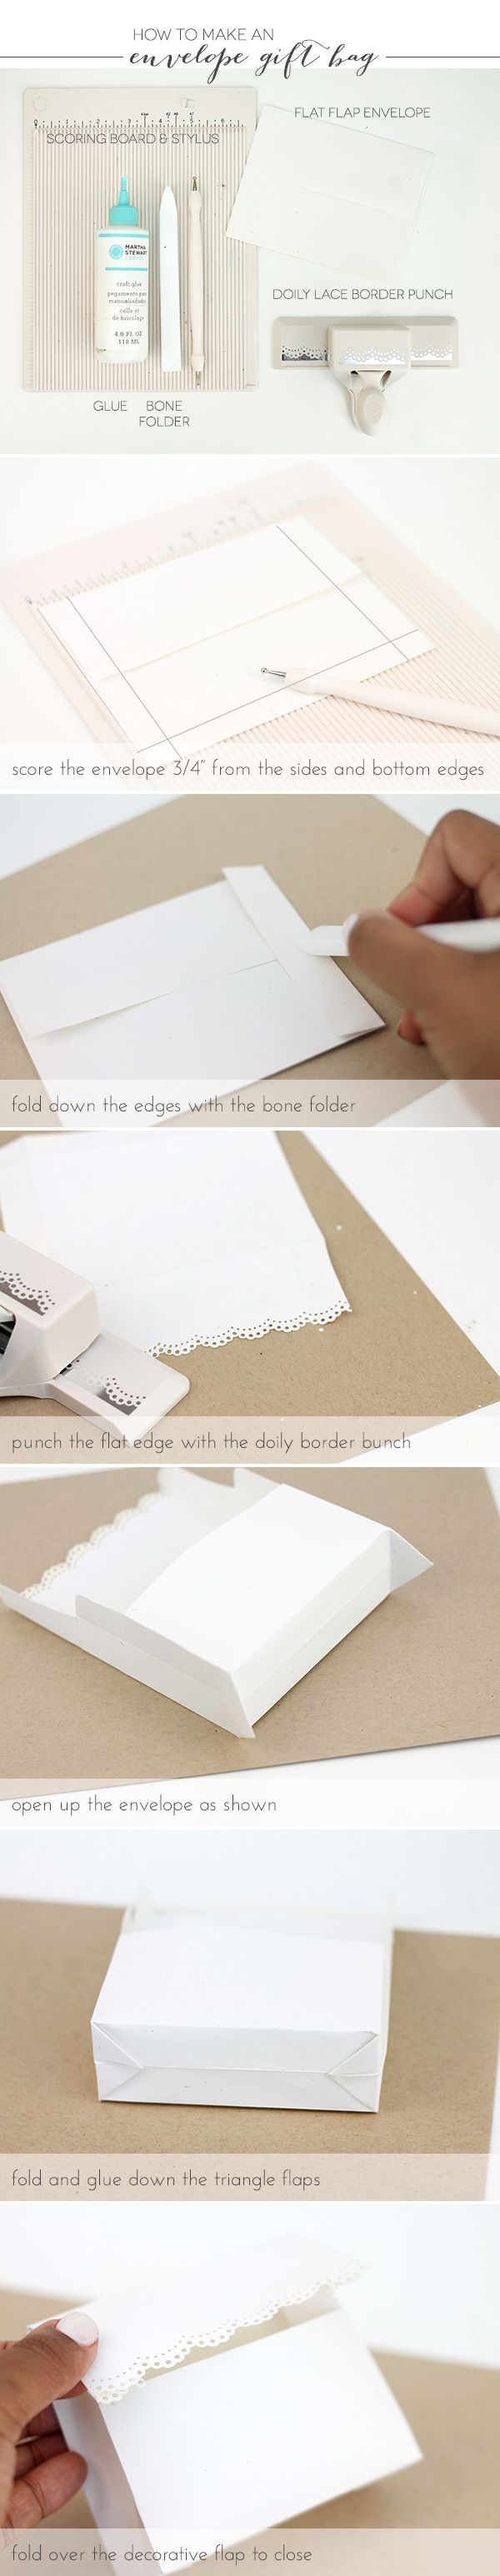 envelope to purse cards and wrapping pinterest. Black Bedroom Furniture Sets. Home Design Ideas